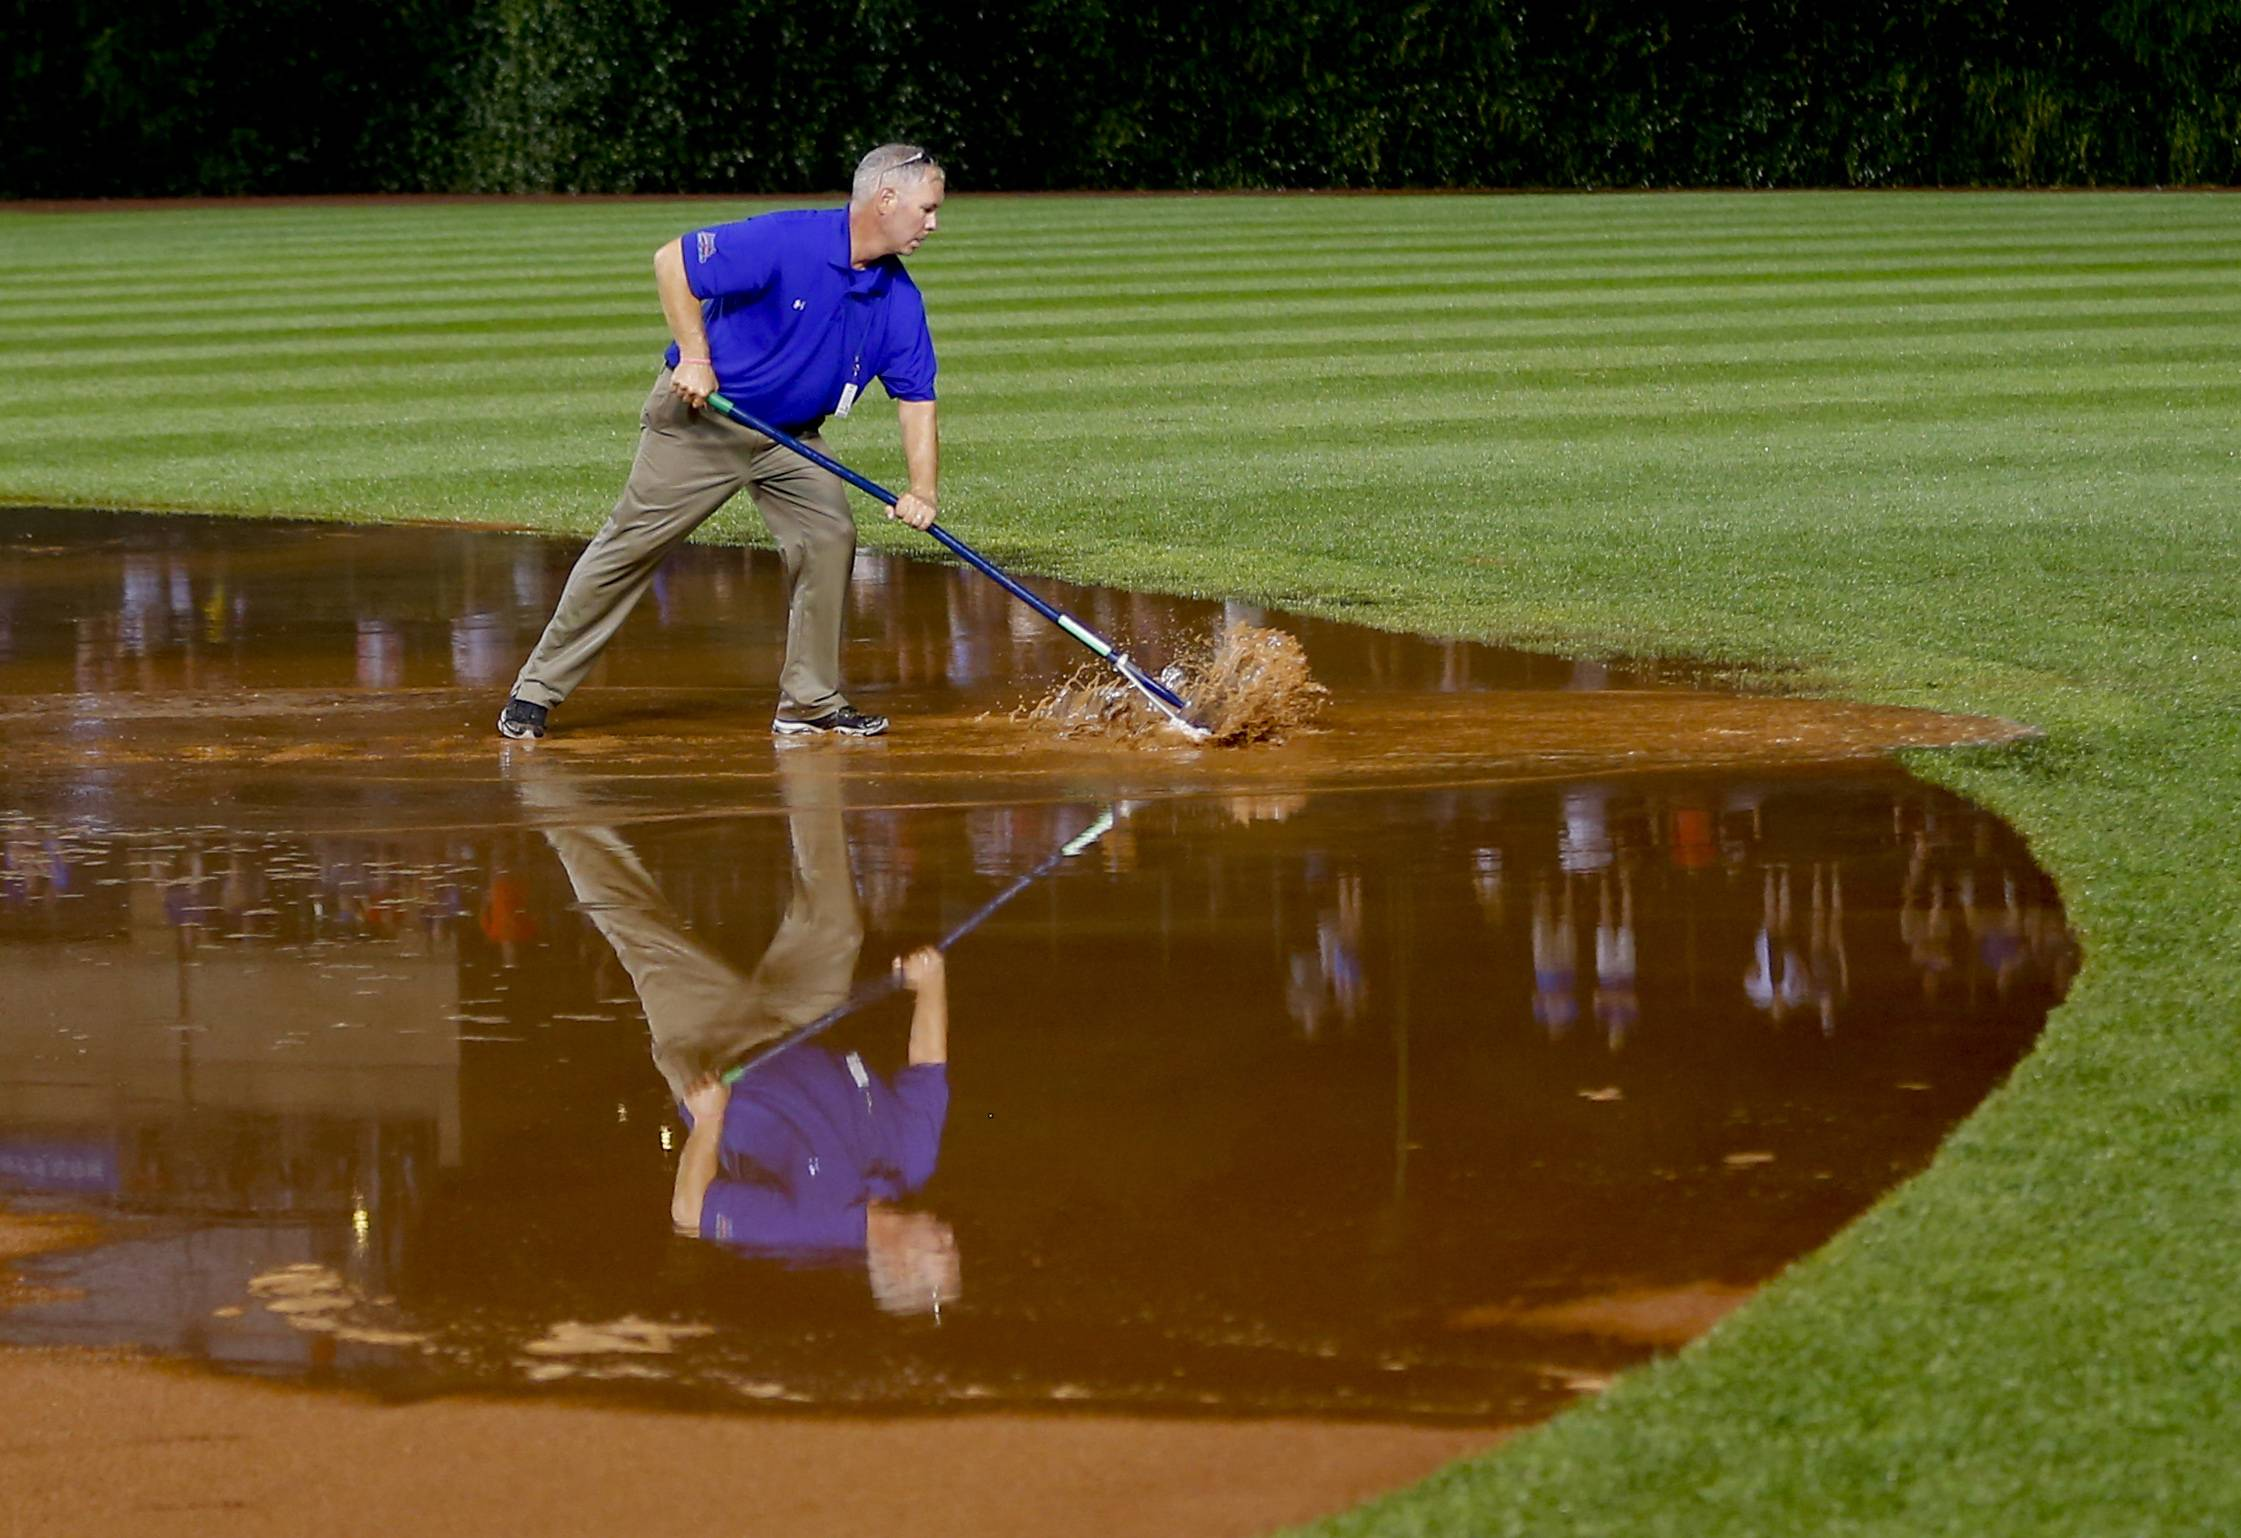 A member of the grounds crew works on the field after a heavy rain soaked Wrigley Field during the fifth inning. But the infield would never dry in time.